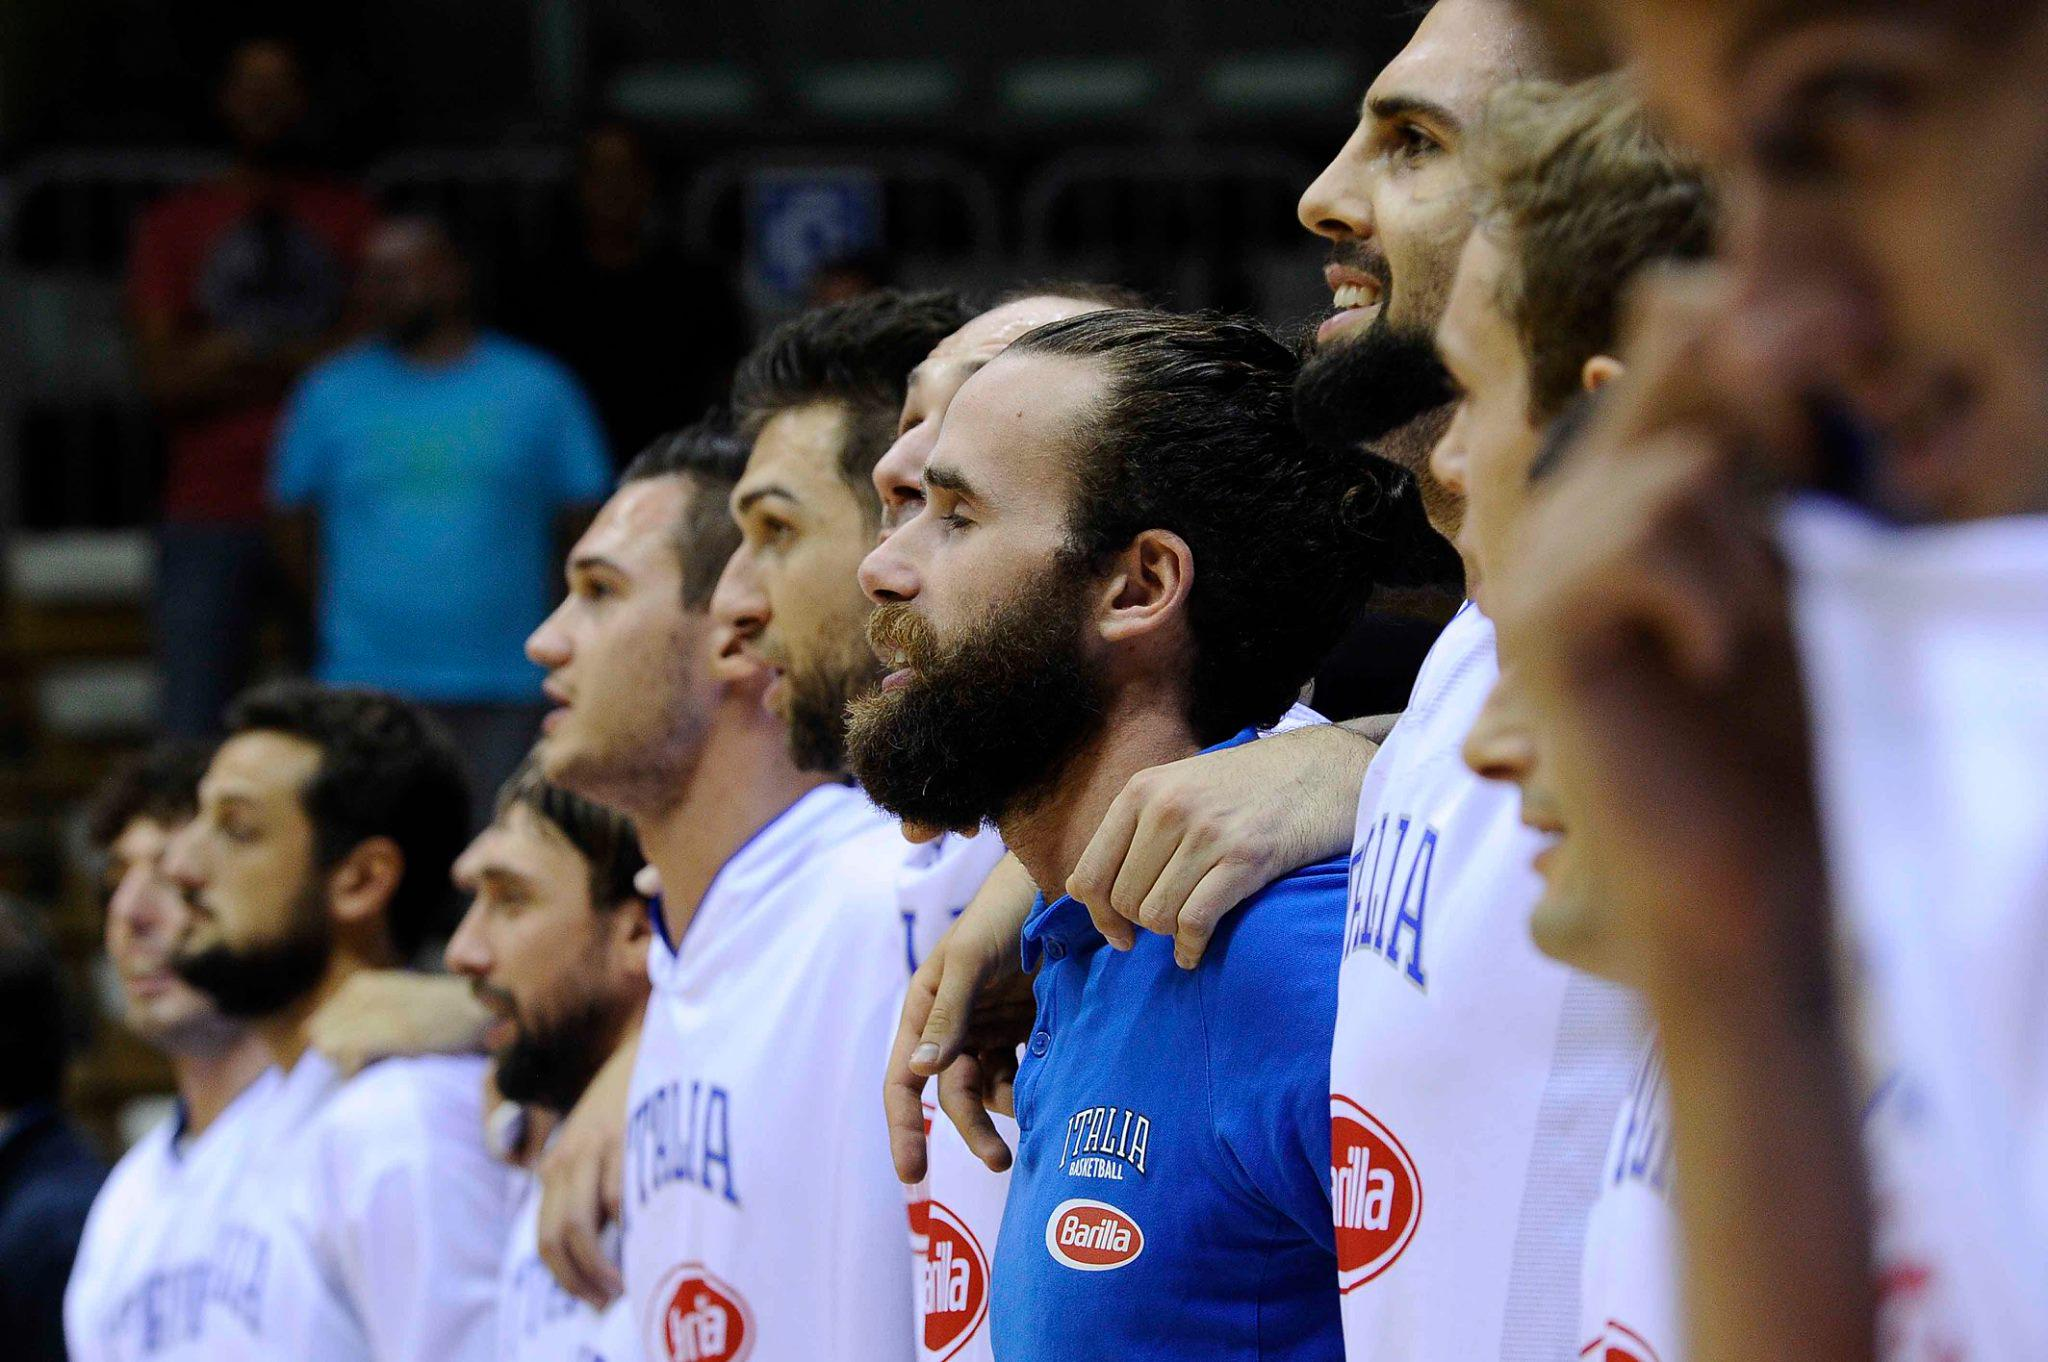 Dove vedere ITALIA-Turchia Streaming Video Diretta TV | Basket Pallacanestro